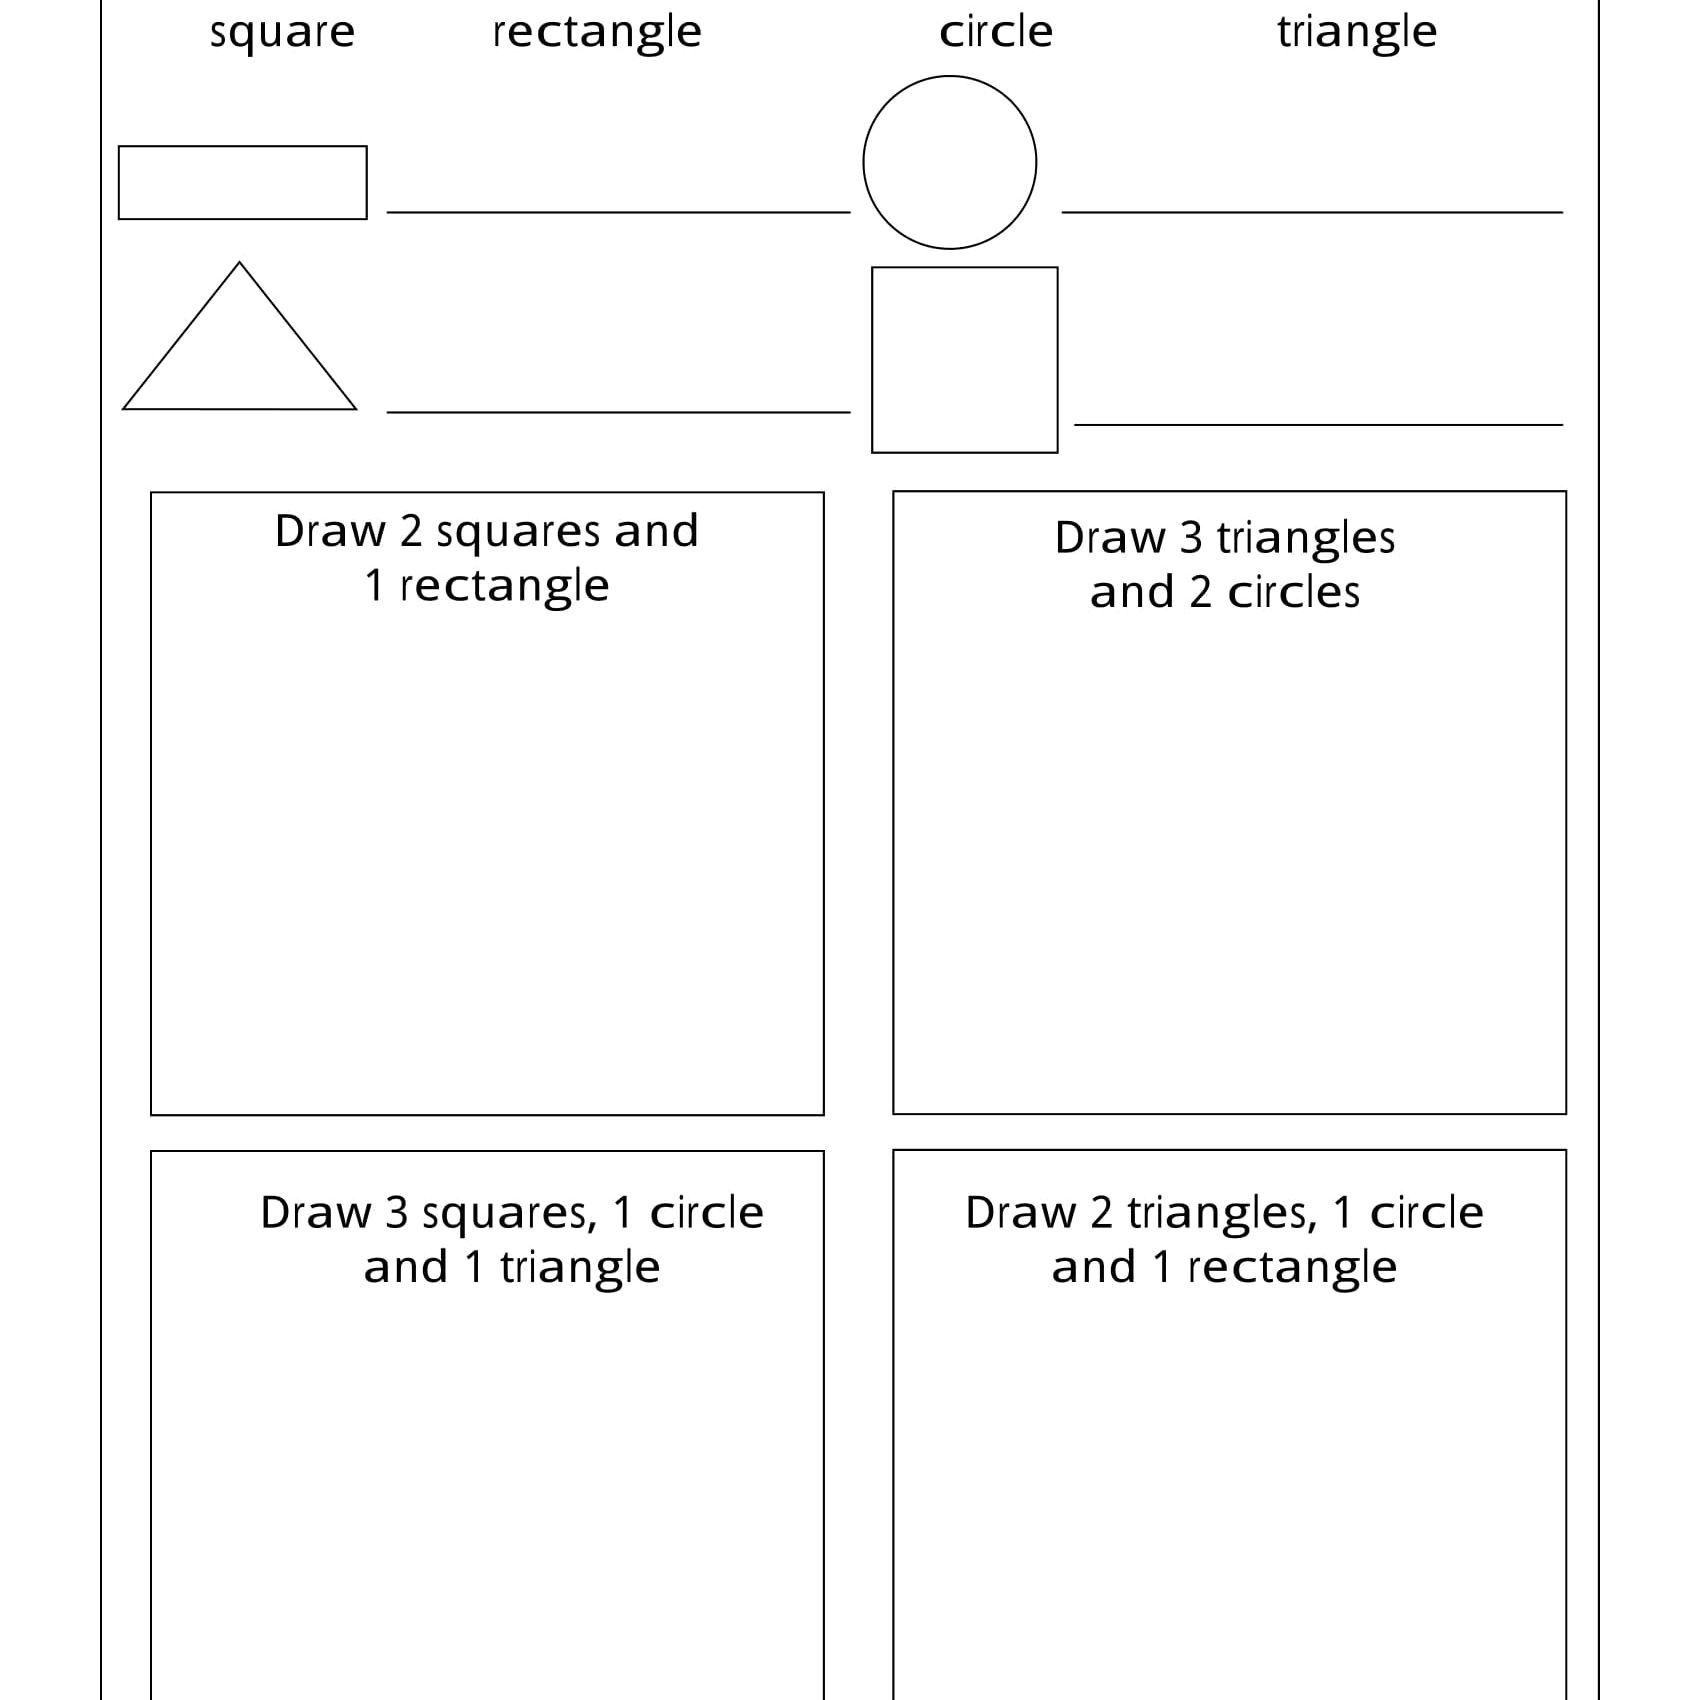 Geometry Worksheets For Students In 1St Grade - Free Printable Geometry Worksheets For Middle School